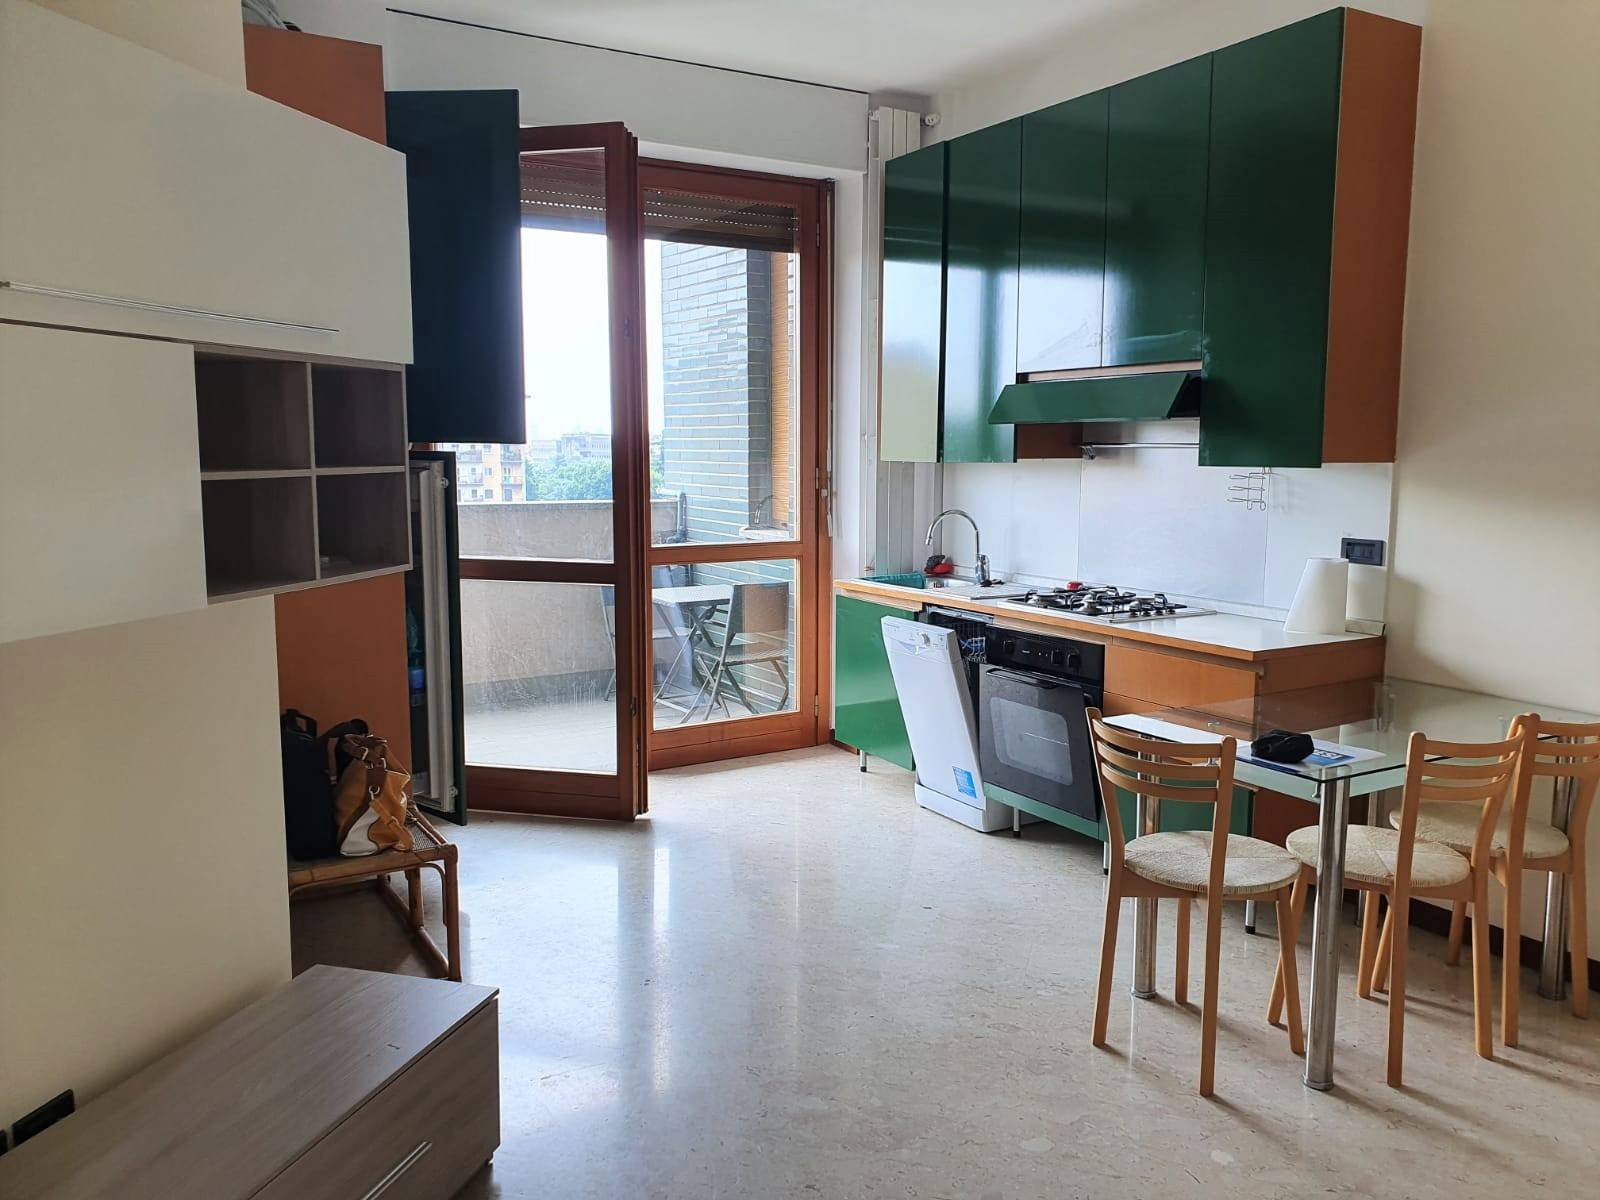 SESTO SAN GIOVANNI, Apartment for rent, Excellent Condition, Heating Individual heating system, Energetic class: F, Epi: 131,65 kwh/m2 year, placed